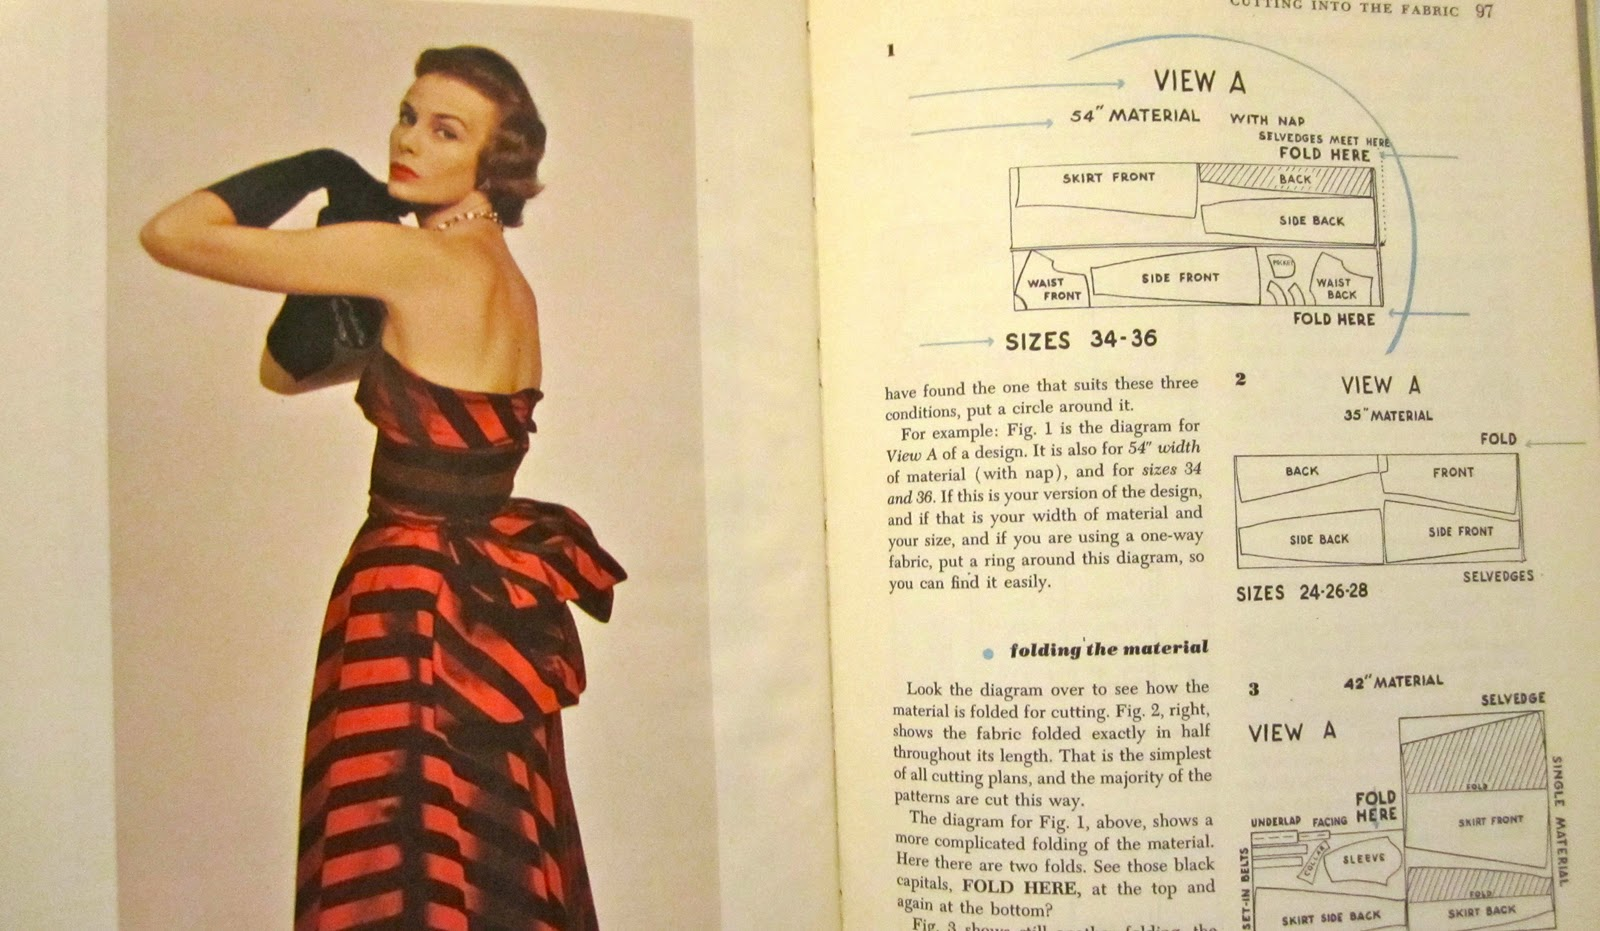 A few threads loose november 2011 there are several being sold on etsy at the moment its one of the few vintage sewing books that i have that mentions lingerie sewing and plackets jeuxipadfo Choice Image